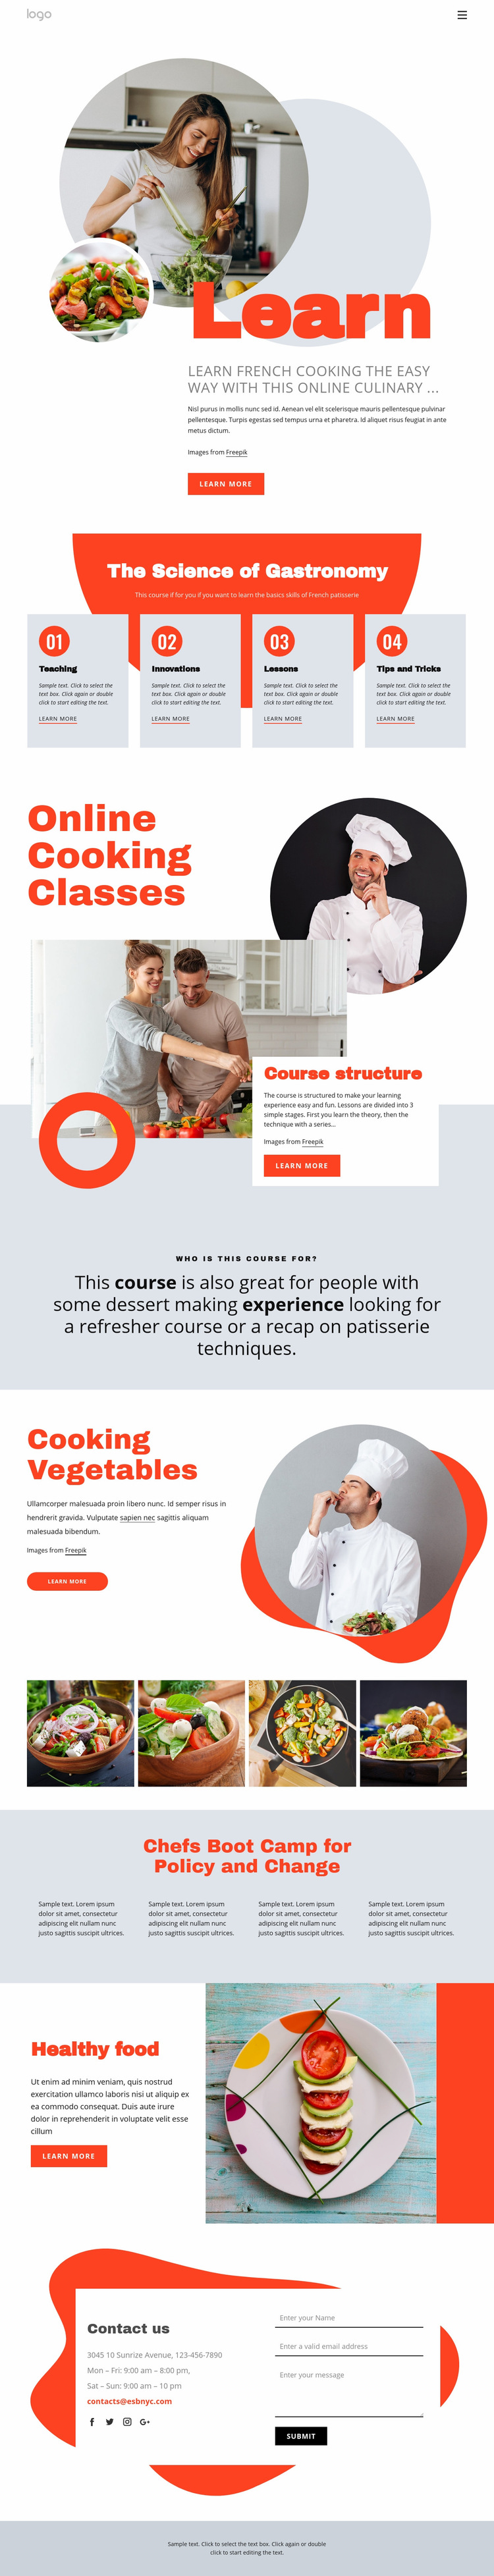 Learn cooking the easy way Web Page Design